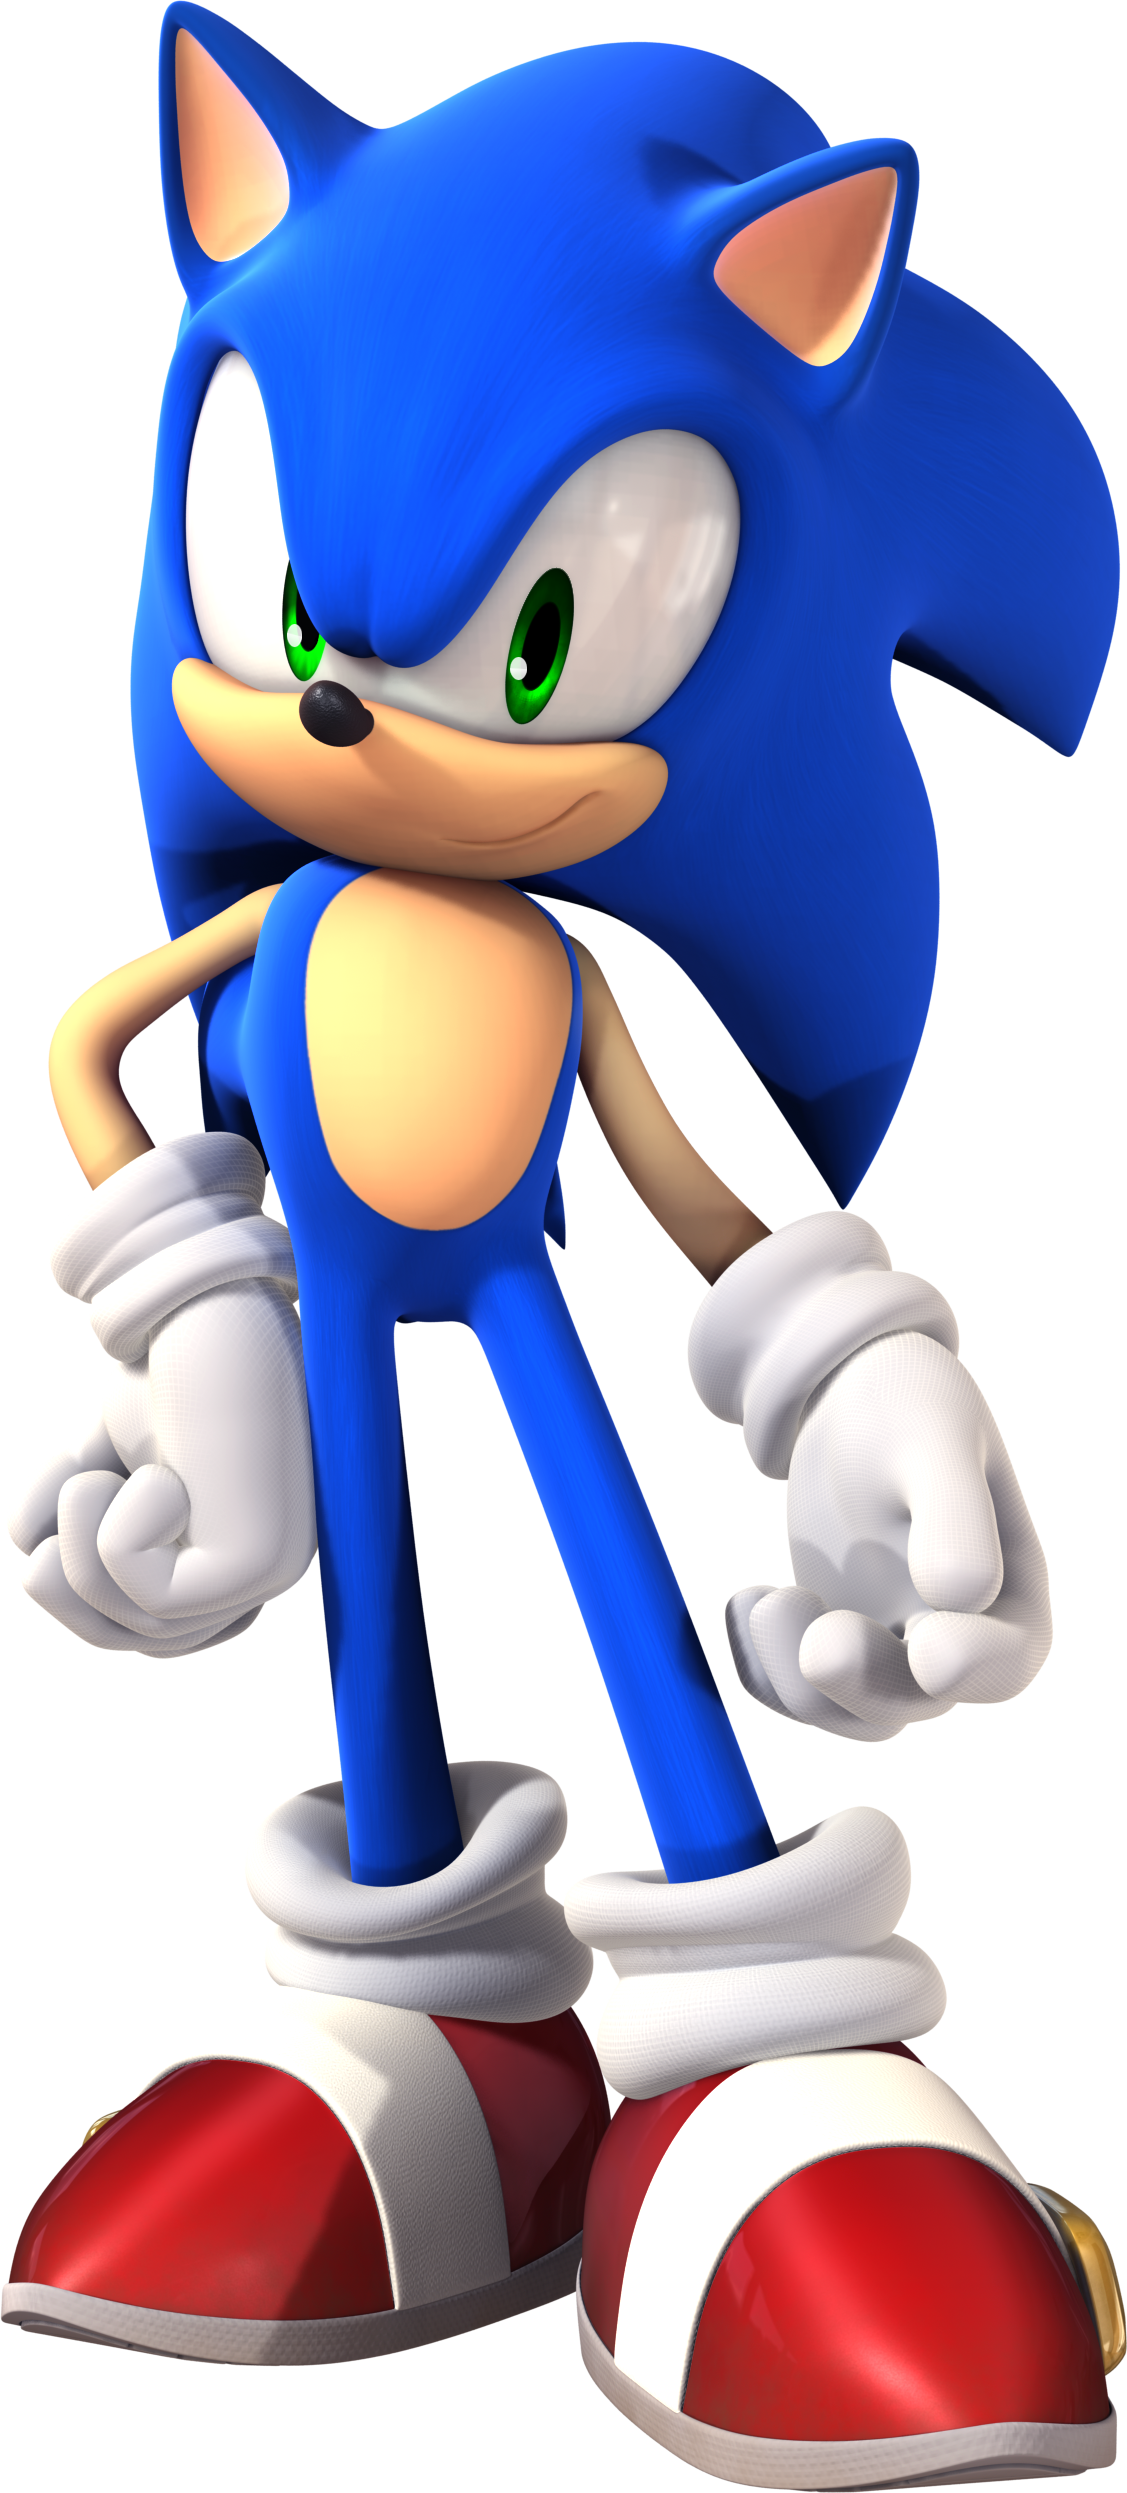 imagenes de sonic y sus personajes taringa. Black Bedroom Furniture Sets. Home Design Ideas